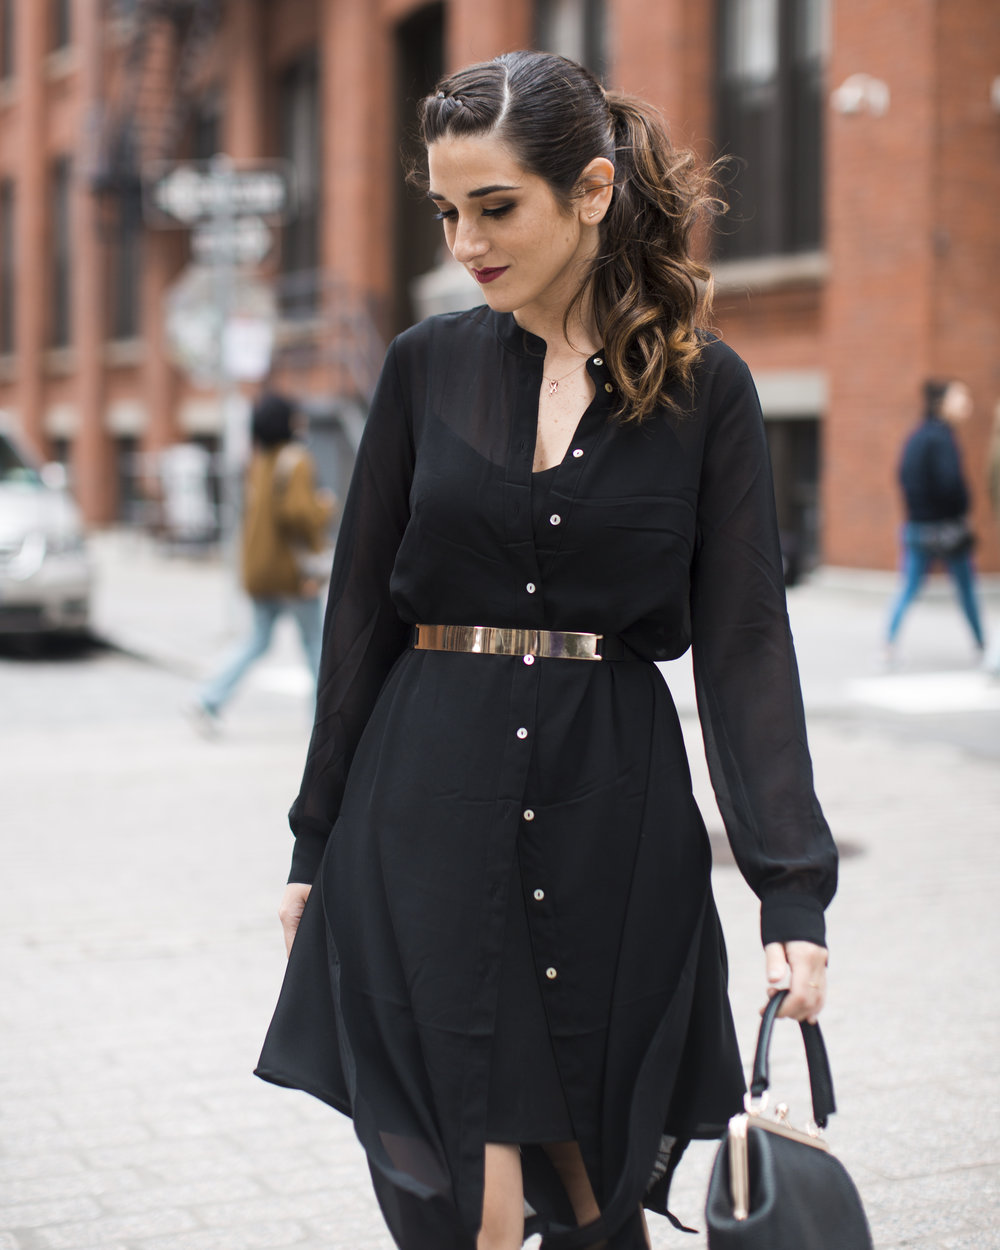 Gold Ribbon Pendant Leibish and Co. Diamonds Louboutins & Love Fashion Blog Esther Santer NYC Street Style Blogger Monochrome Mules Necklace Braid Hair Girl Women Shirt Dress All Black Red Lipstick Trendy Outfit Jewelry Inspo OOTD Wear Bag Inspo Shop.jpg